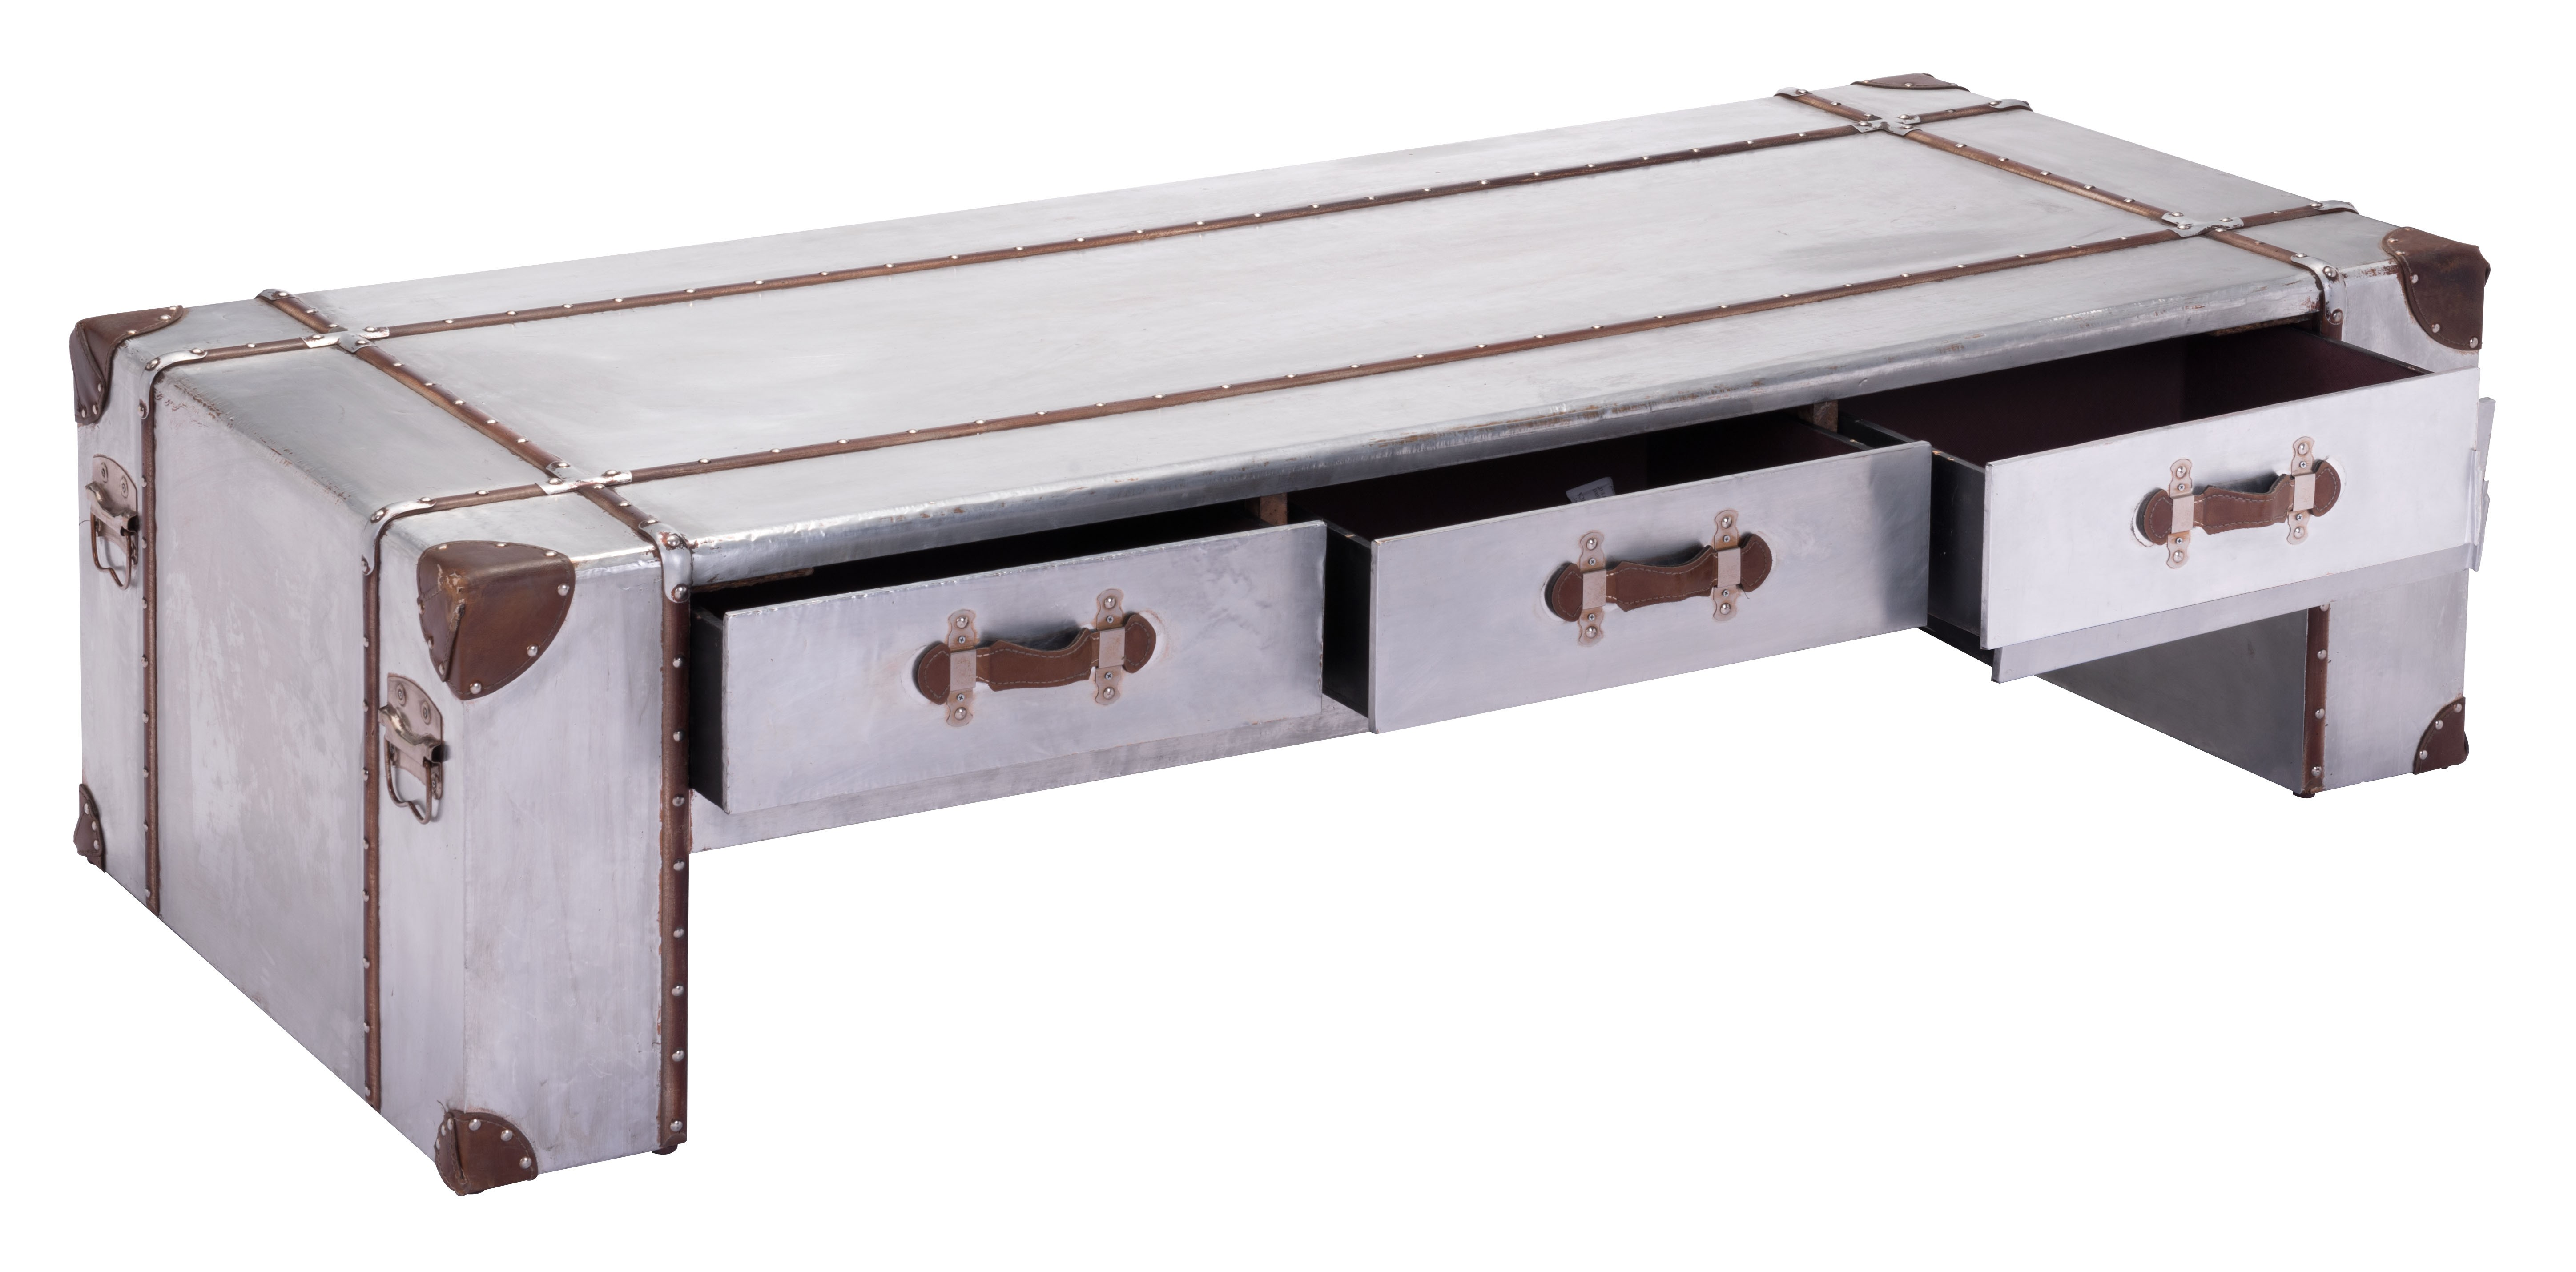 kant-wide-coffee-table-by-zuo.jpg